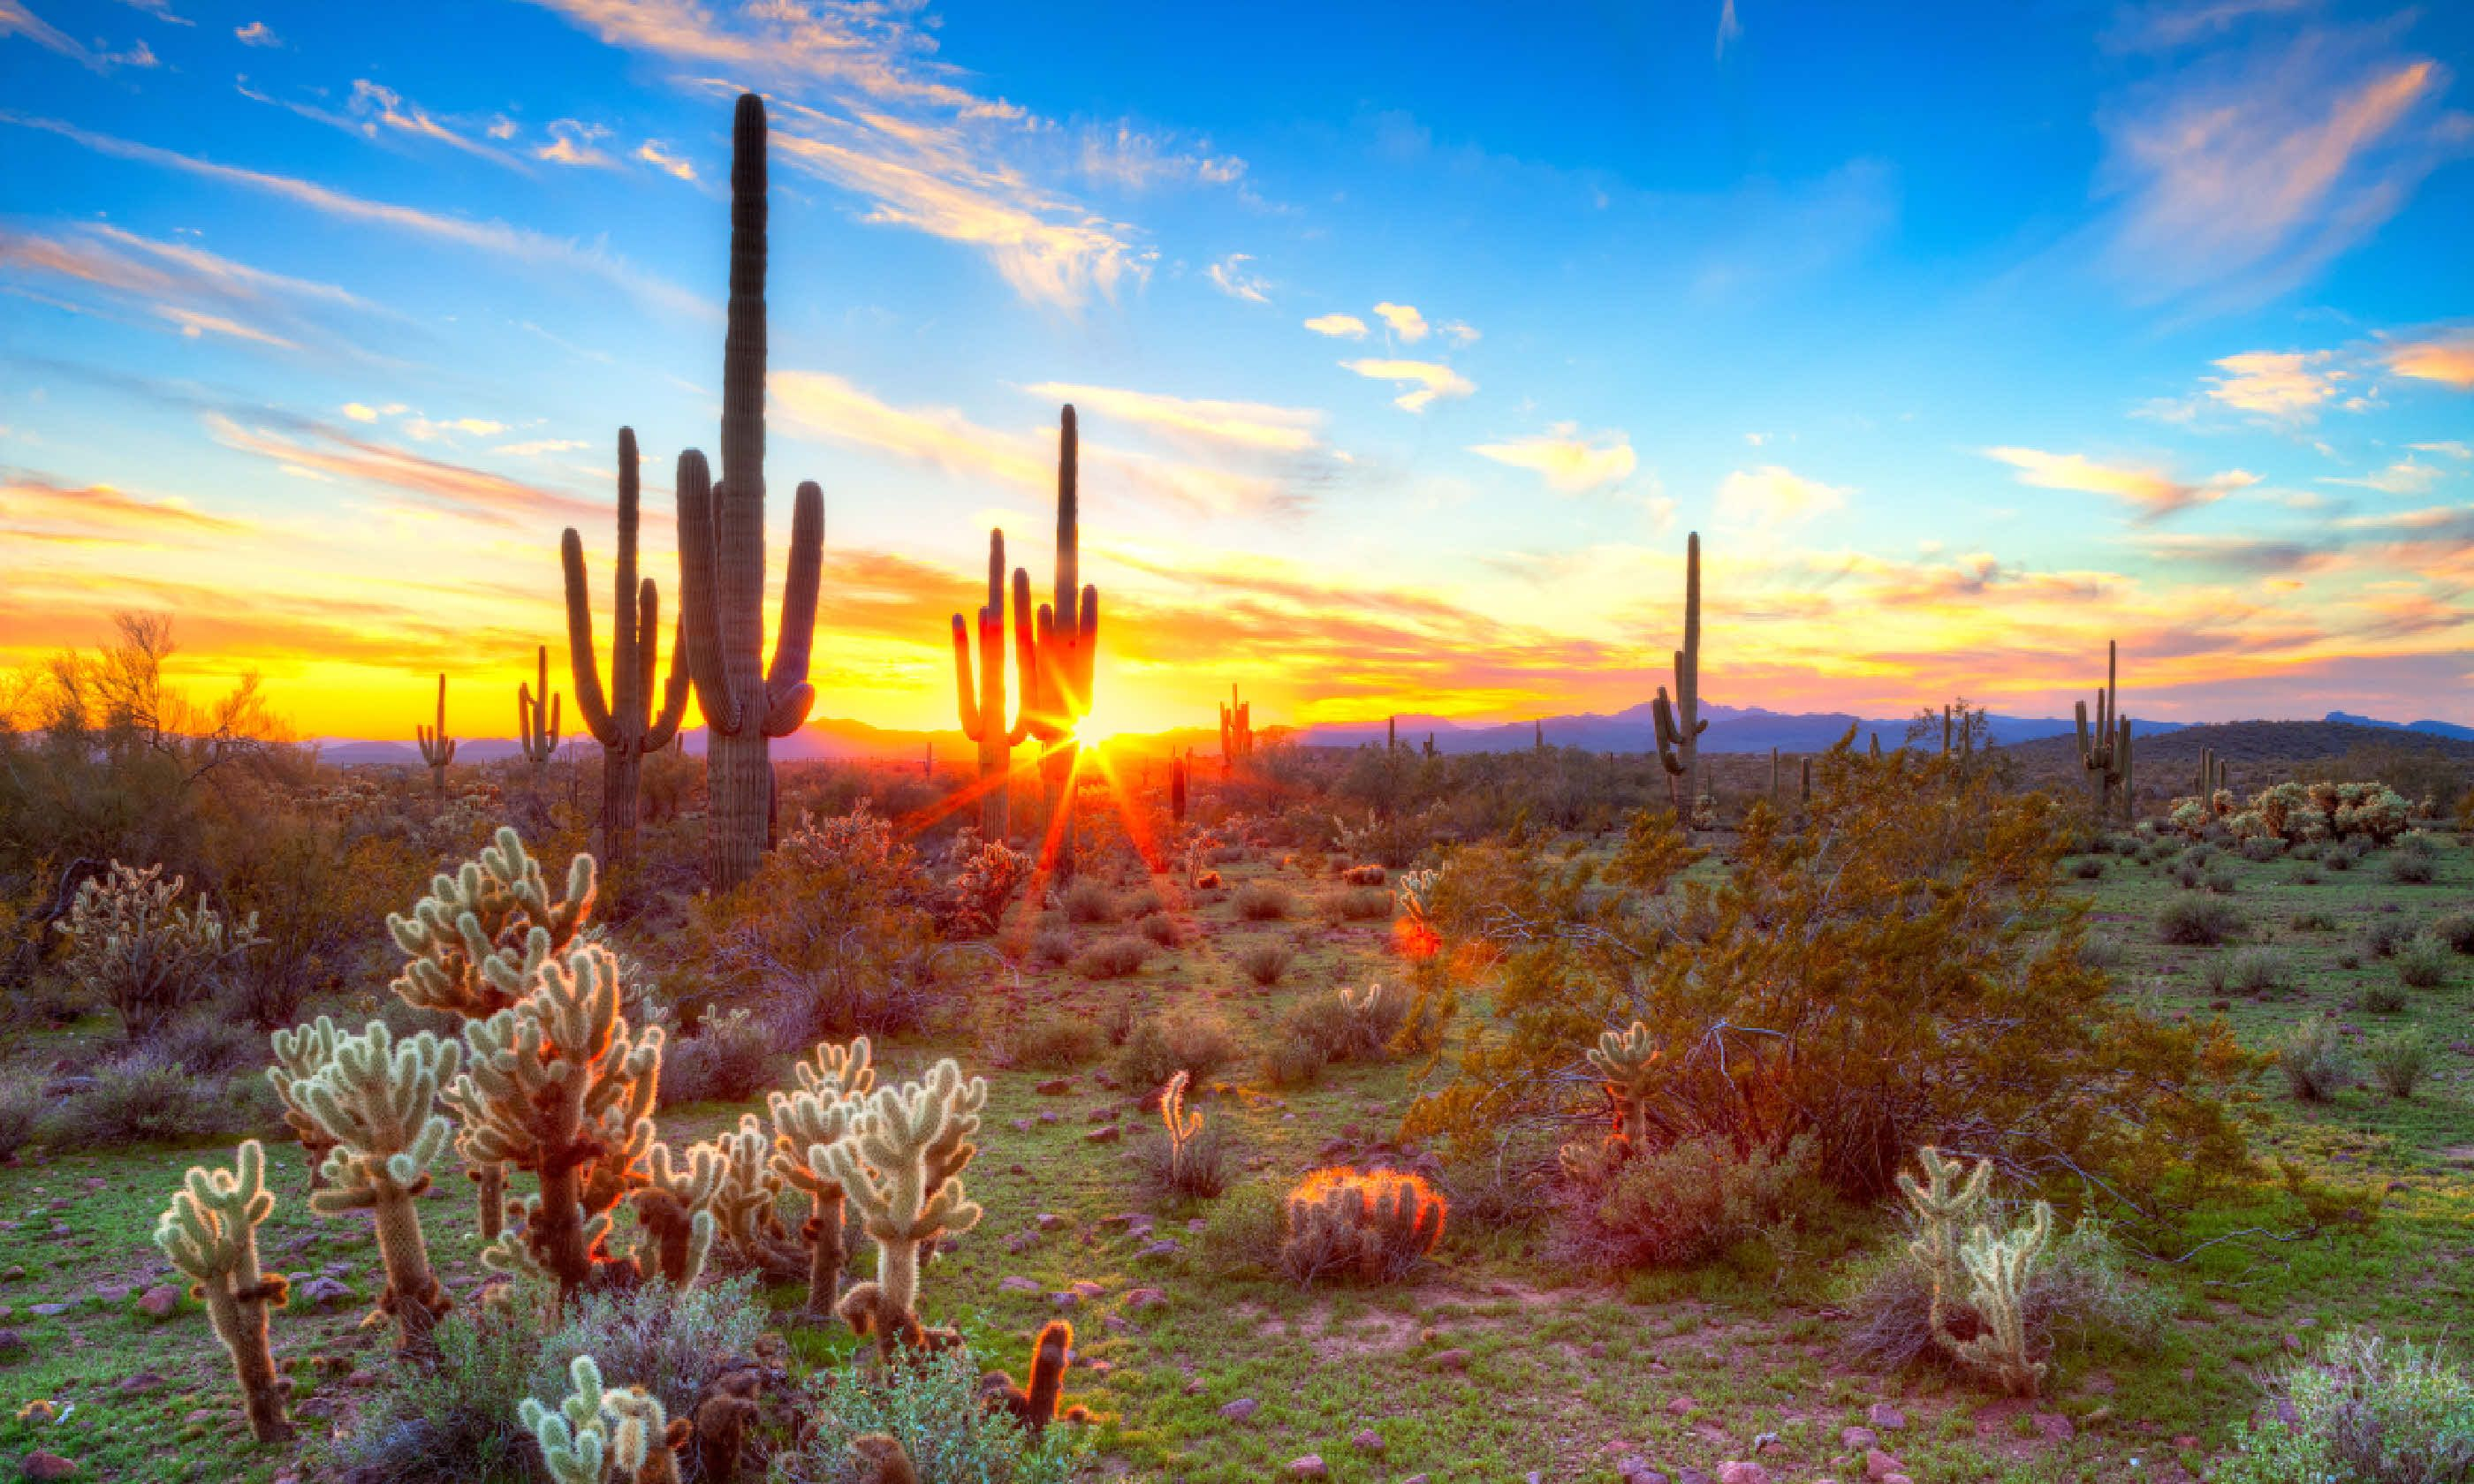 Sunset in Sonoran Desert (Shutterstock)